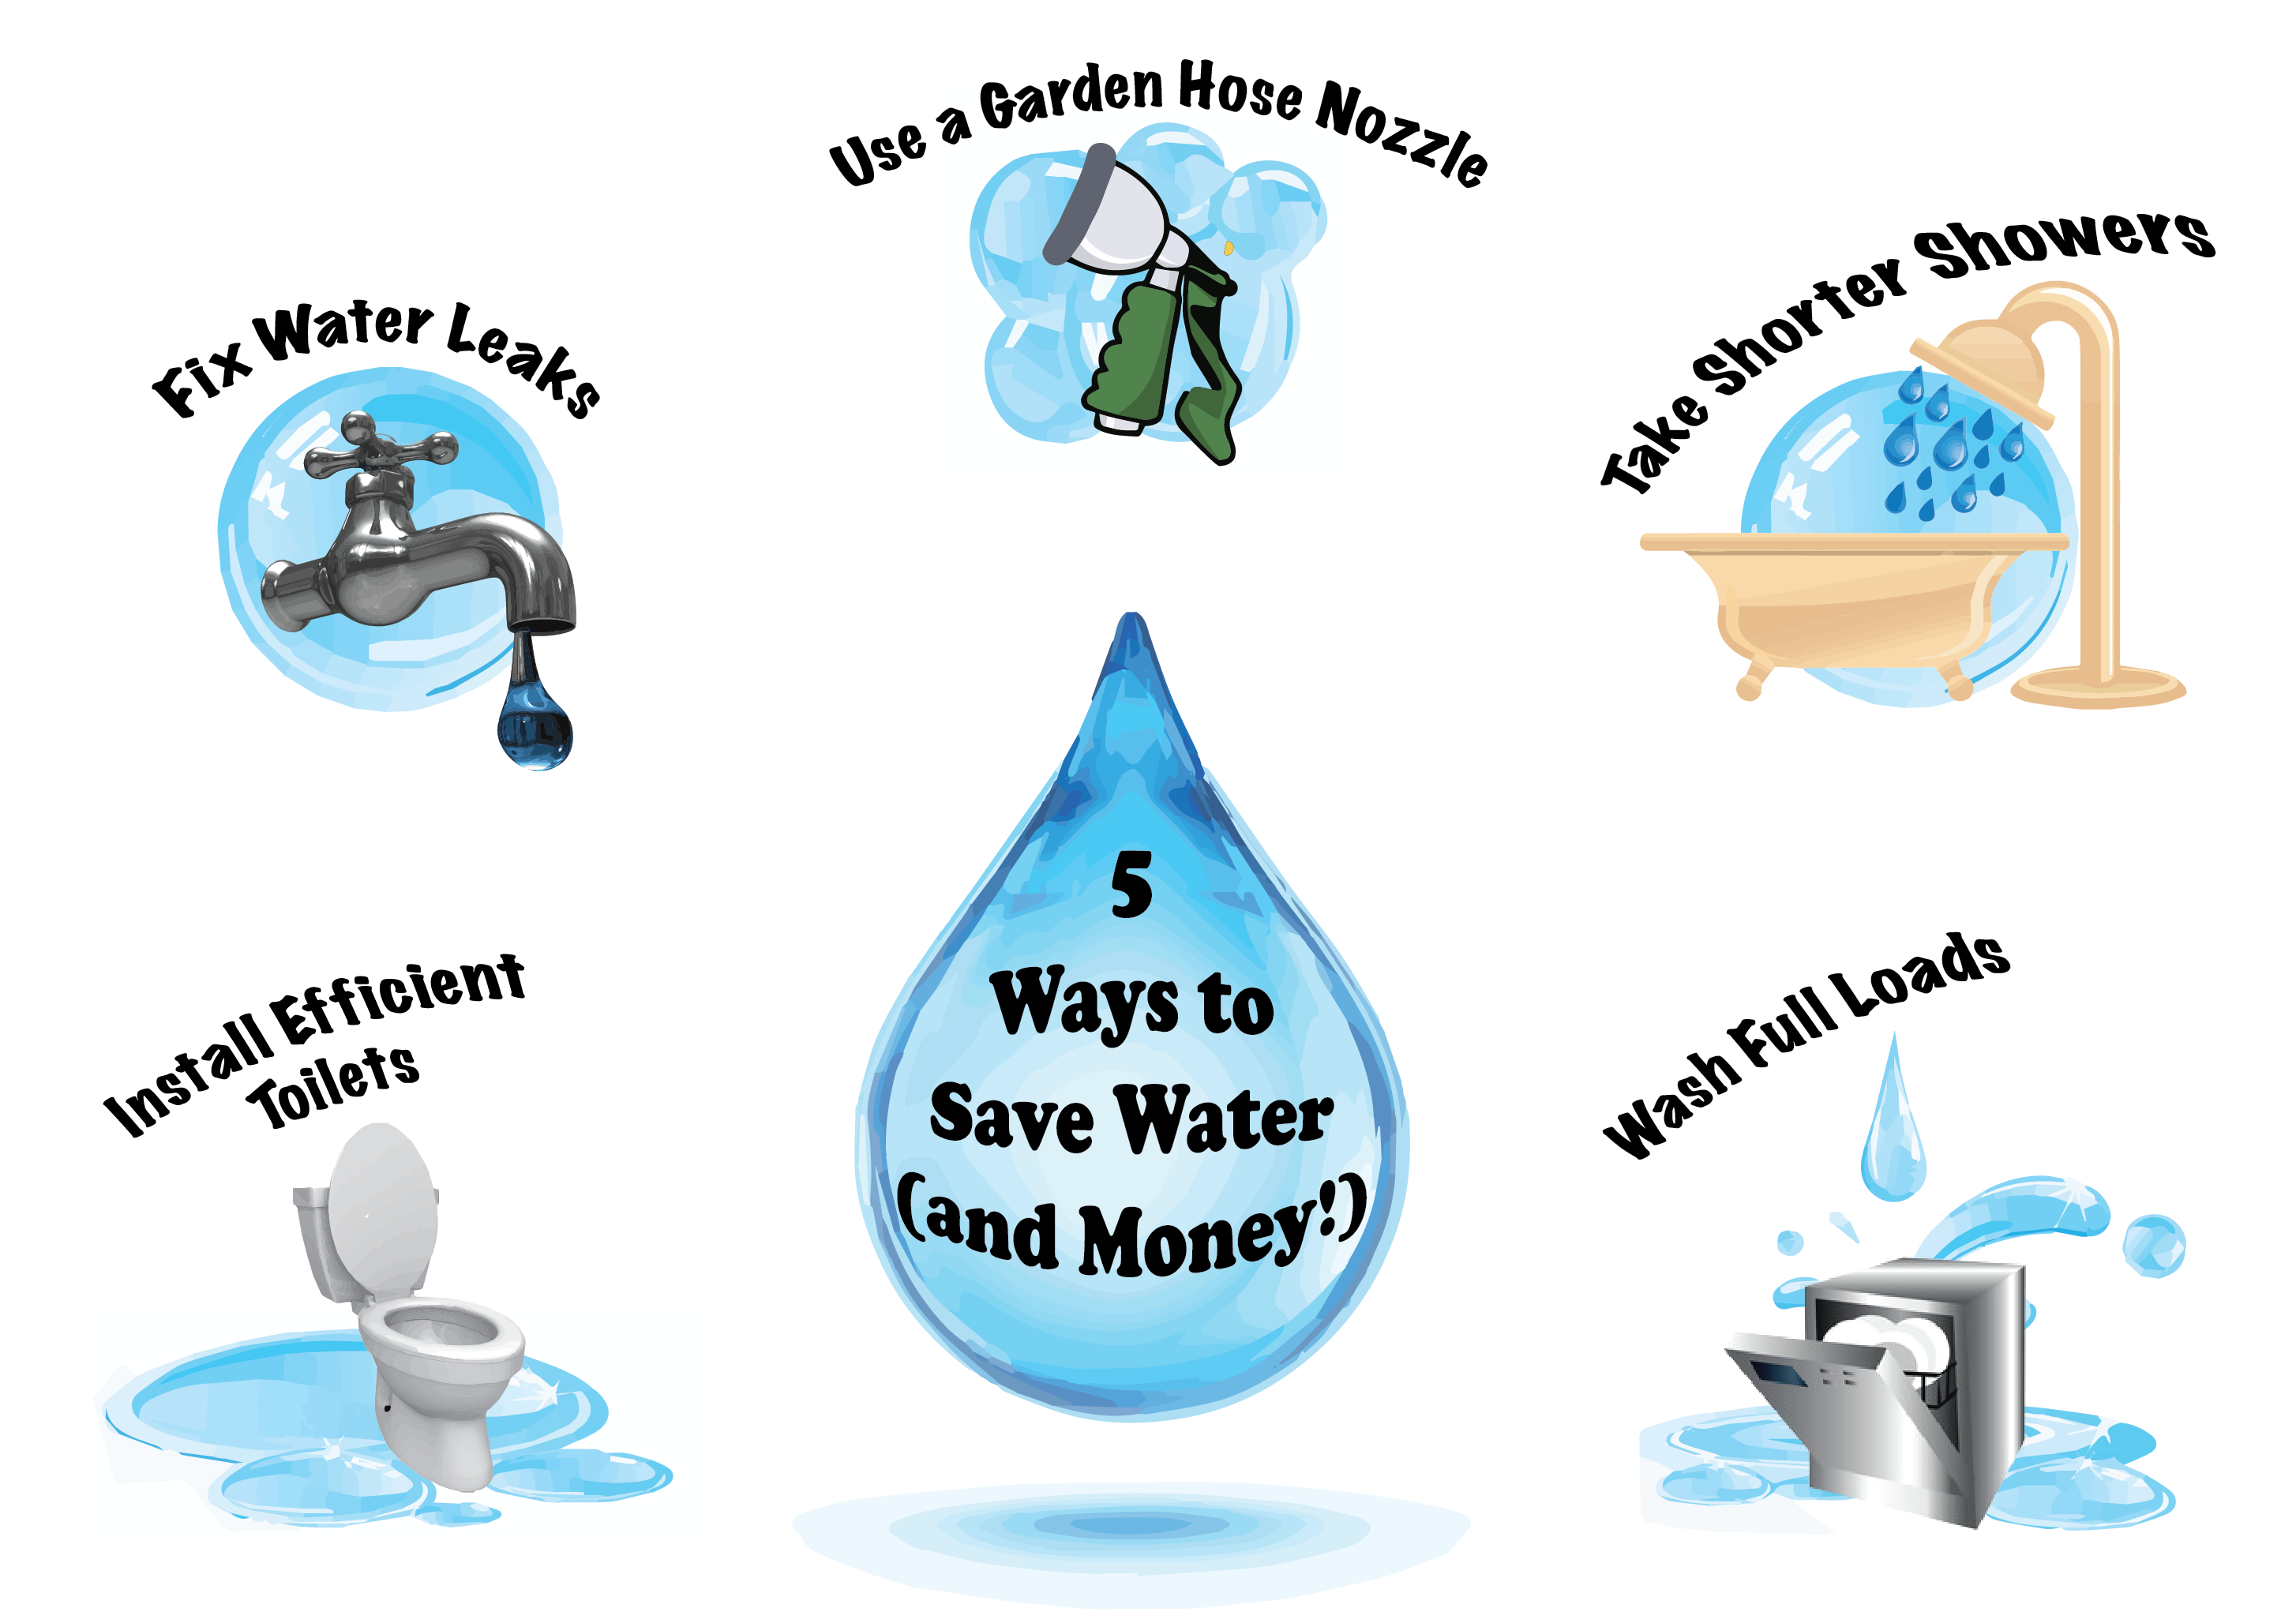 saving water at home essay Conserving water means smaller water bills if you live in an area serviced by a municipal water system if your home is connected to a septic system, water conservation also can help prevent water pollution.